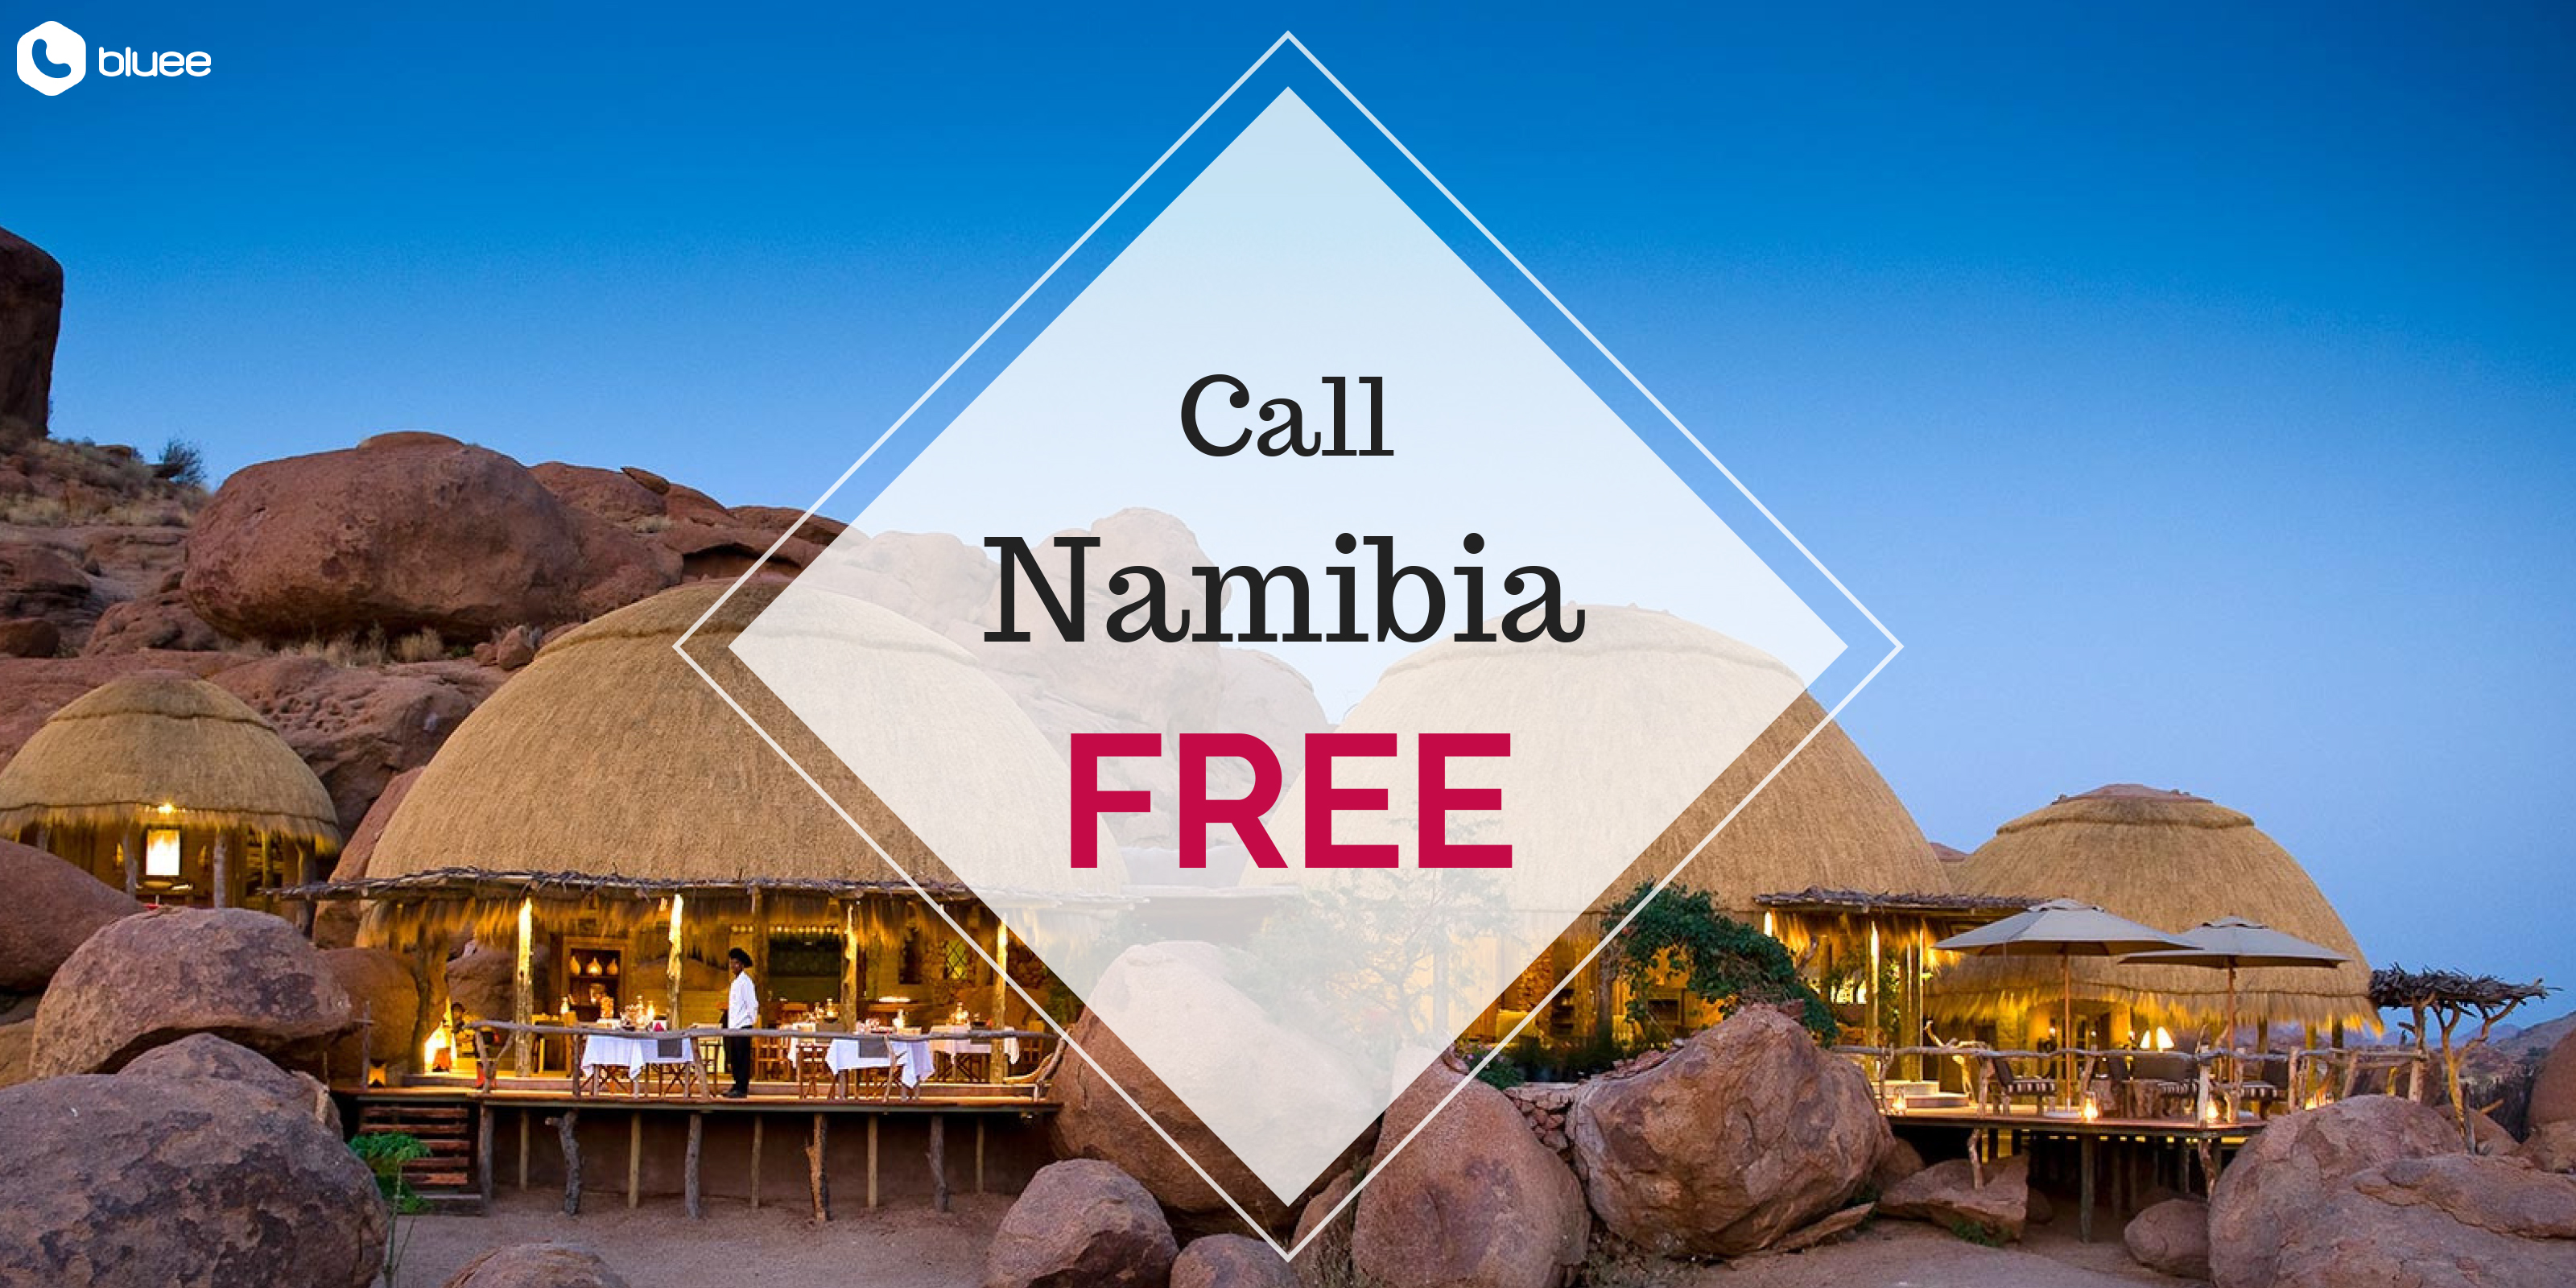 Free Thursday: Call Namibia for FREE